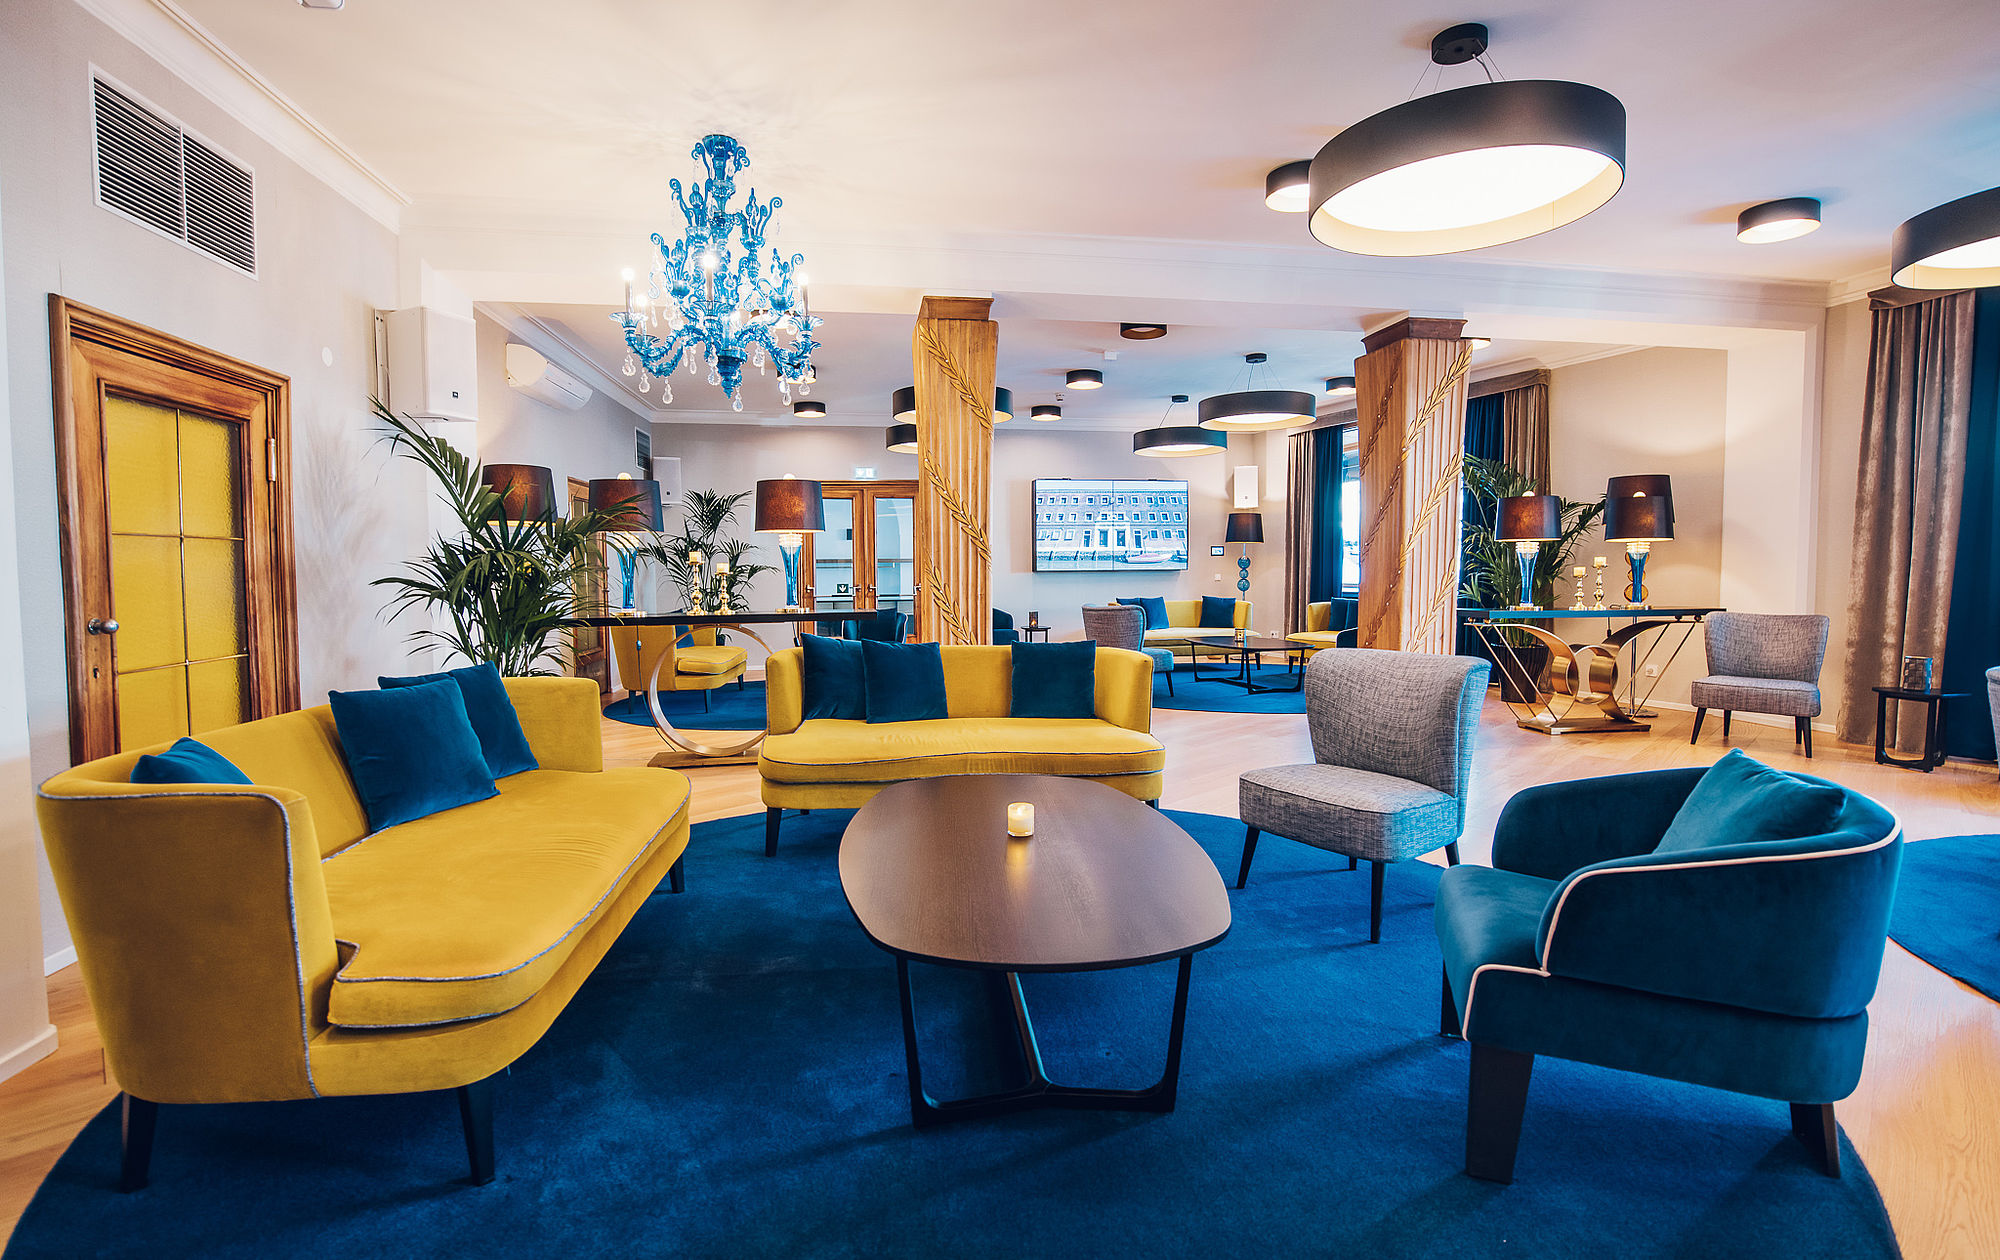 Interior view of the Hotel Stein Lounge with stylish furniture, blue floor lamps and artfully decorated column.